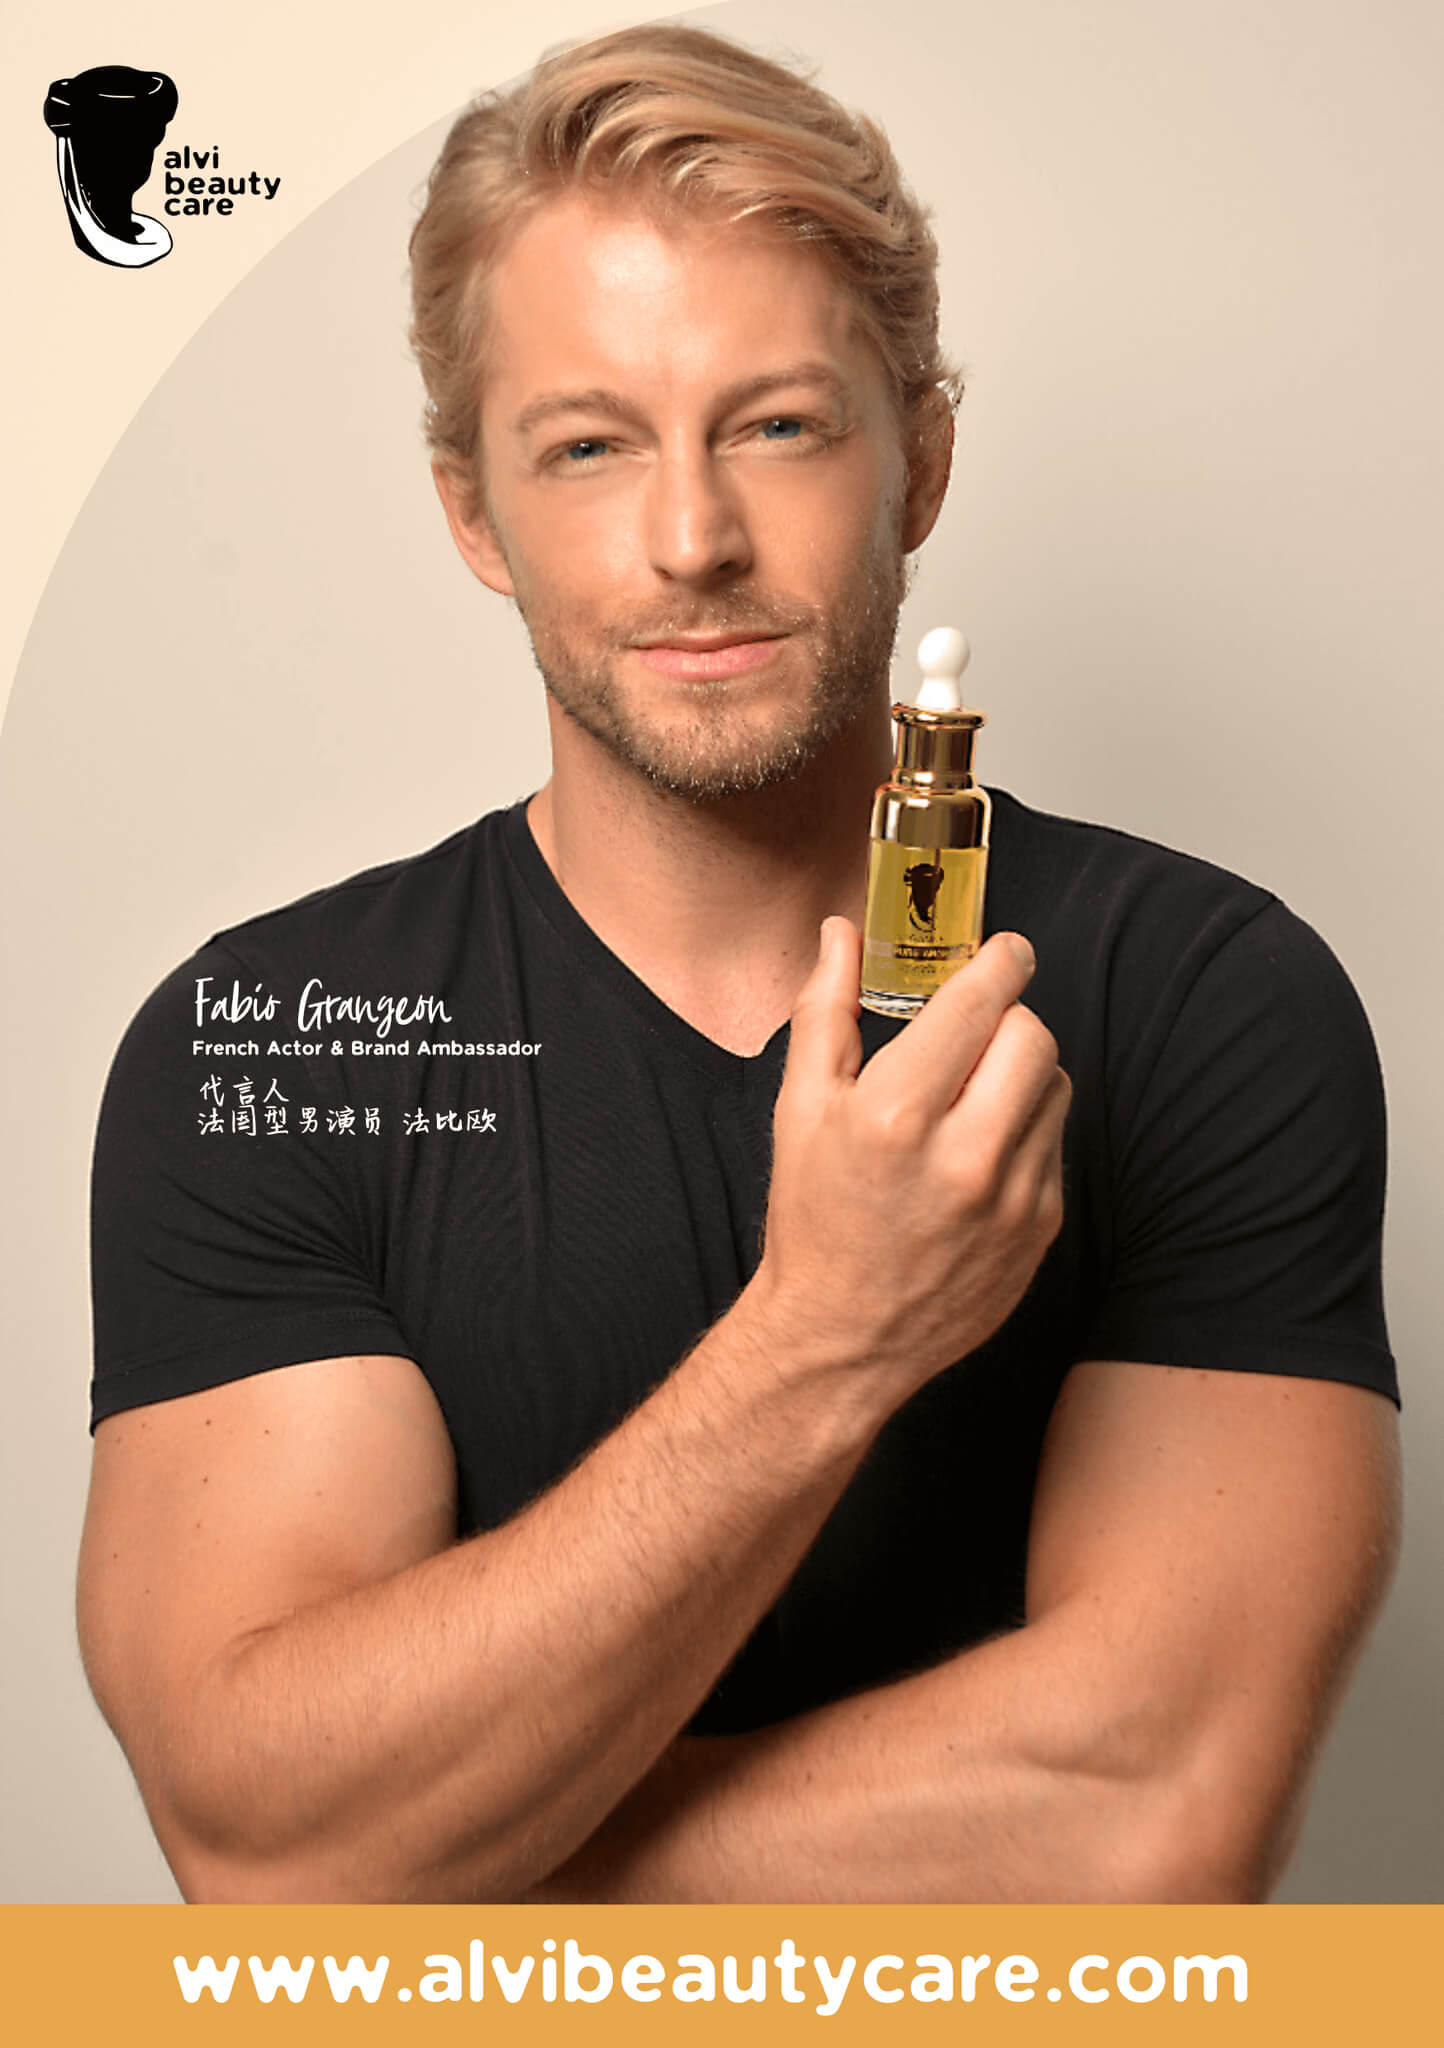 Fabio Grangeon holding a bottle of Arganne 100% Pure Argan Oil, Why Choose Us, Bus Stop Advertisement, buy argan oil malaysia, argan oil online, best argan oil, best argan oil for skin, argan oil ingredients, amazing benefits of Arganne 100% Pure Argan Oil, imported from Morocco